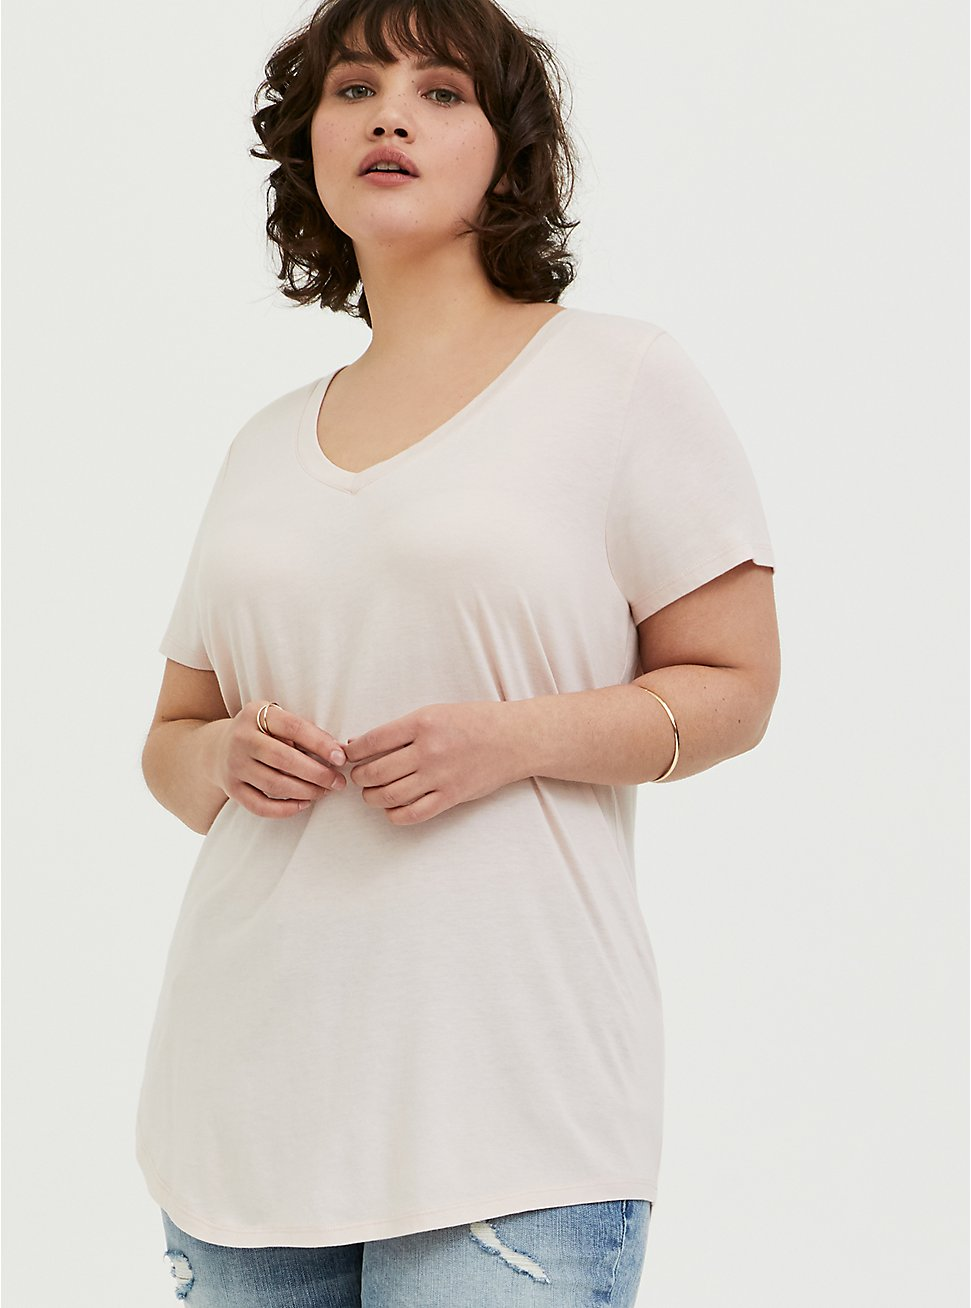 Plus Size Classic Fit V-Neck Tee - Heritage Cotton Light Pink, PEACH BLUSH, hi-res